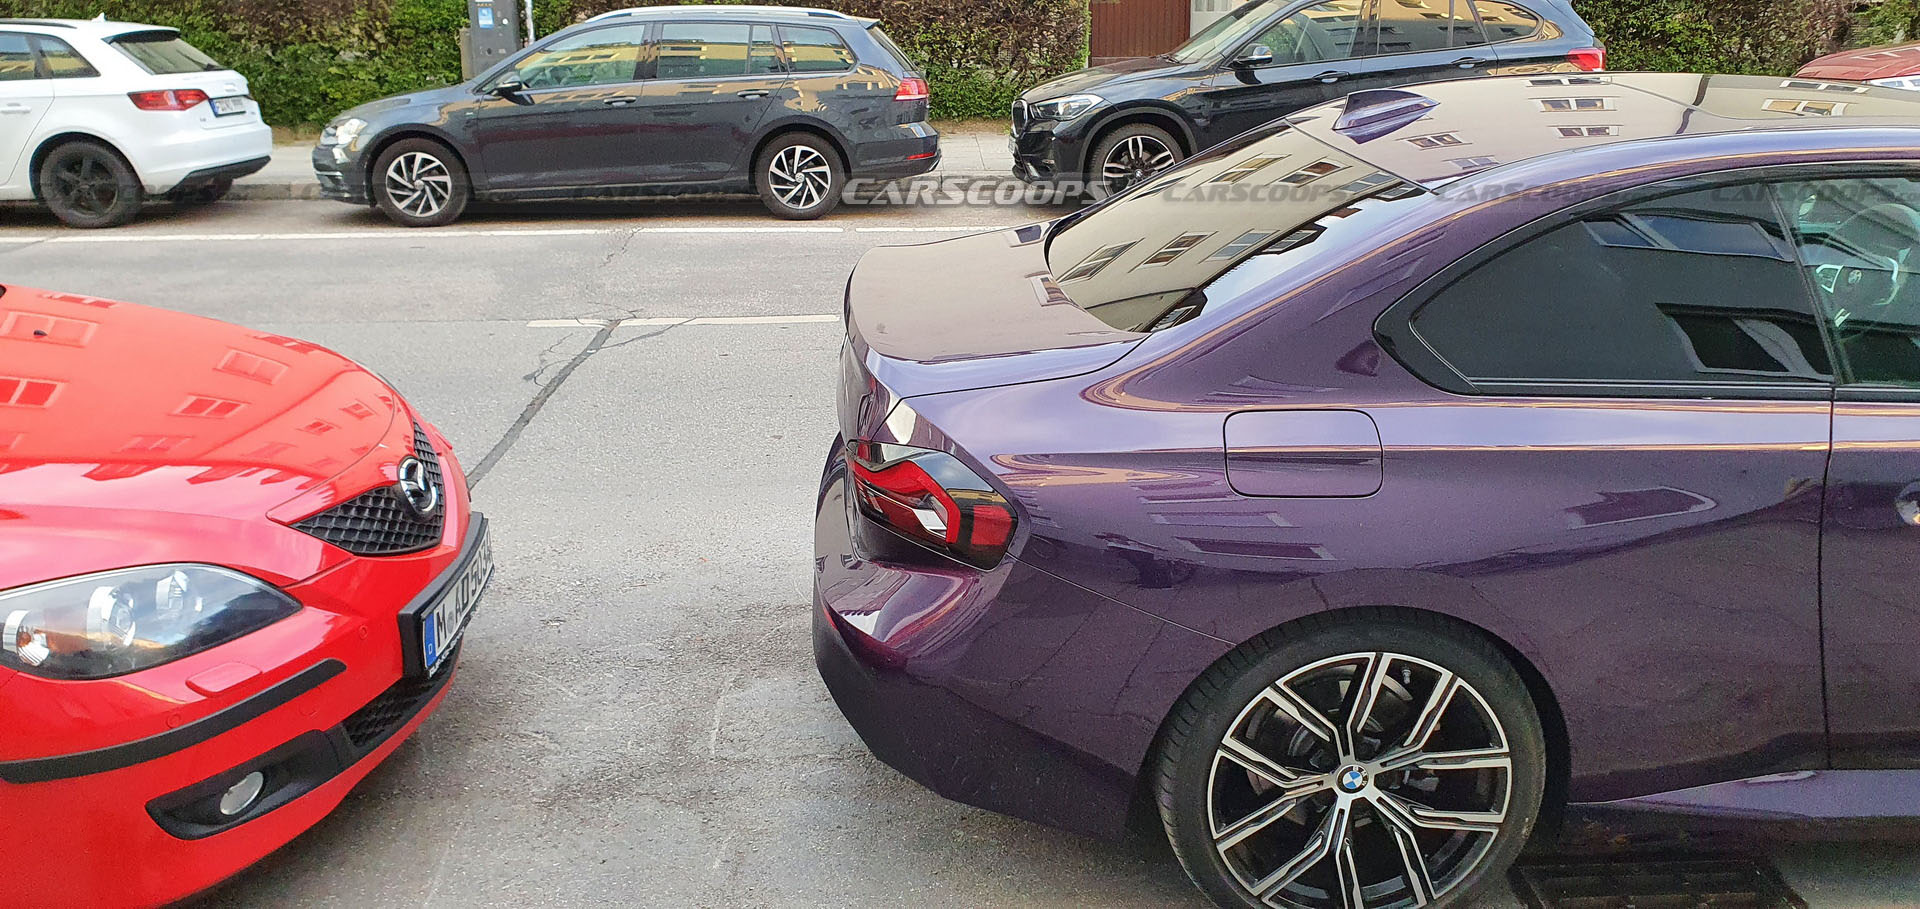 Name:  2022 BMW 2-Series G42 on the streets 4.jpg Views: 7577 Size:  419.5 KB